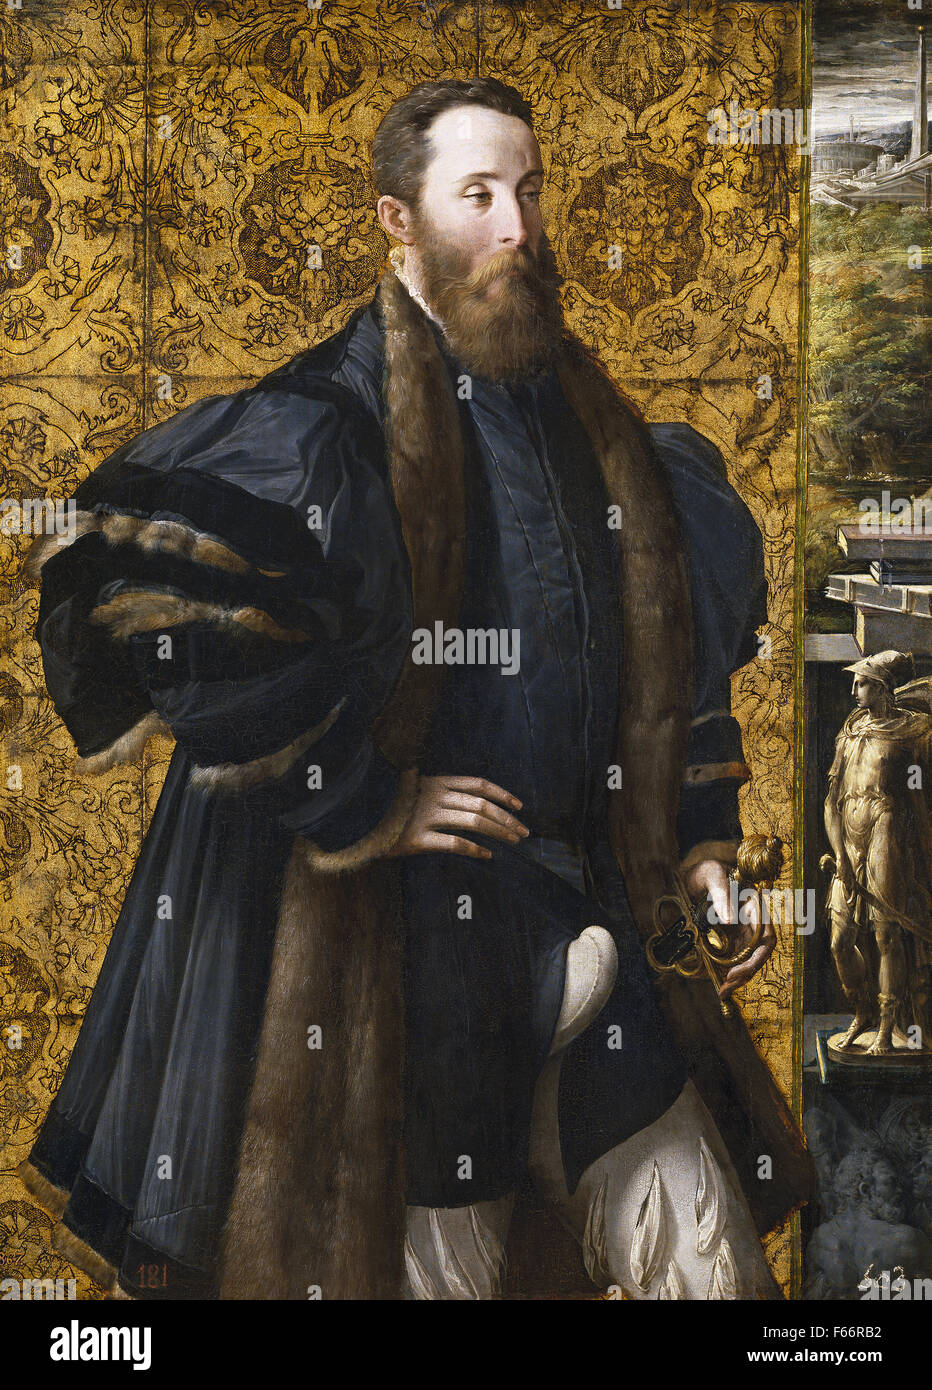 Pedro Maria Rossi, or Roscio, Count of San Secondo - Stock Image